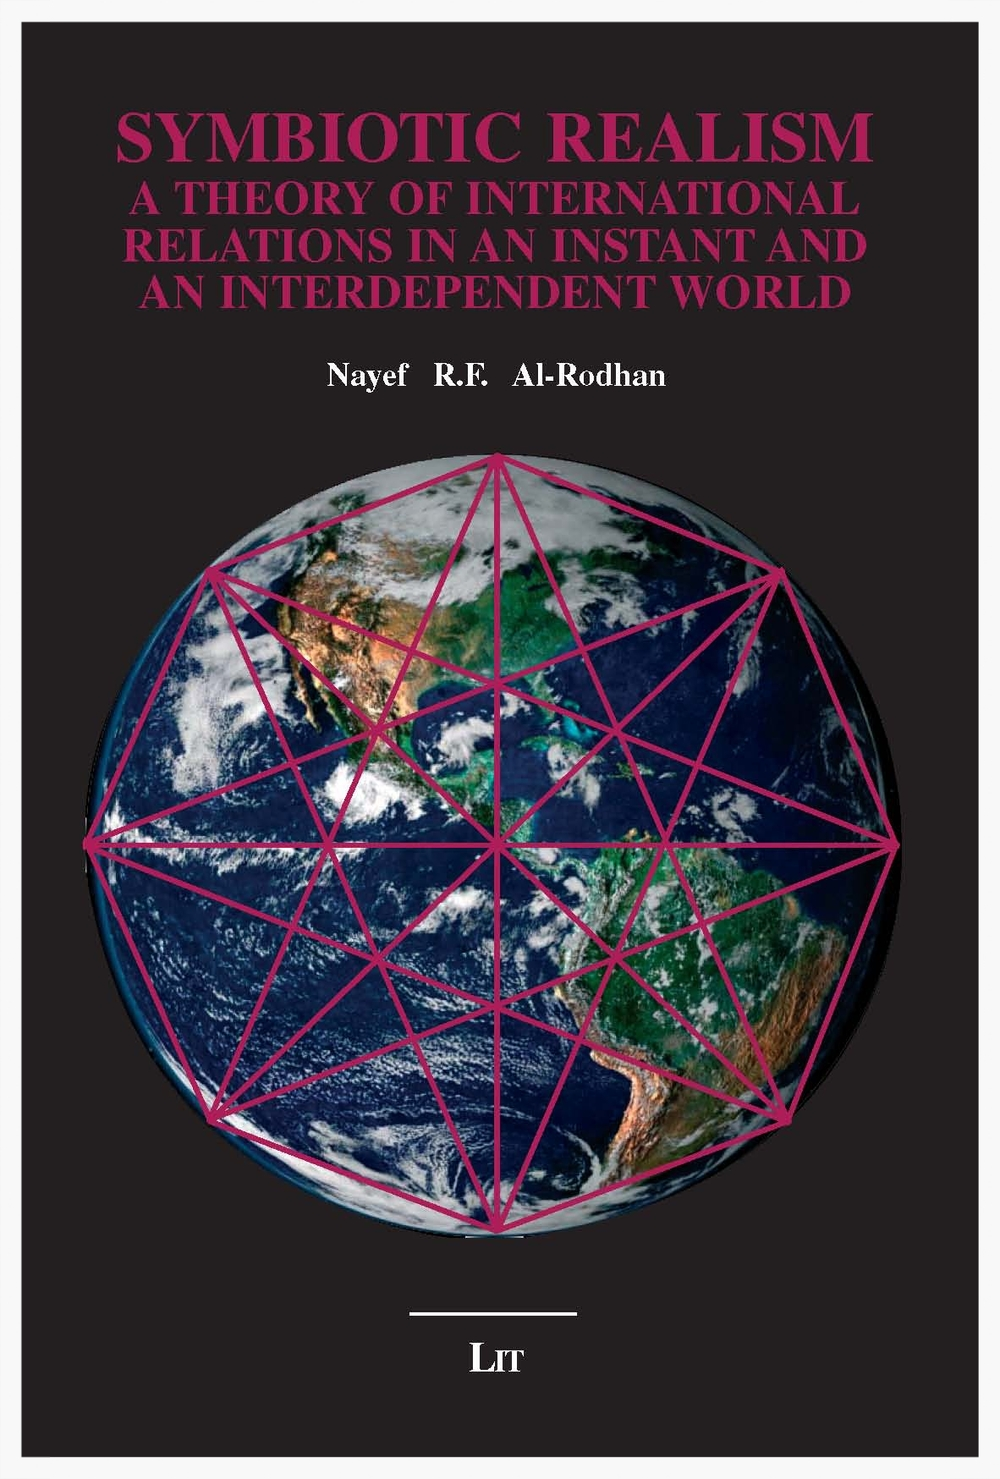 Copy of SYMBIOTIC REALISM: A Theory of International Relations in an Instant and an Interdependent World